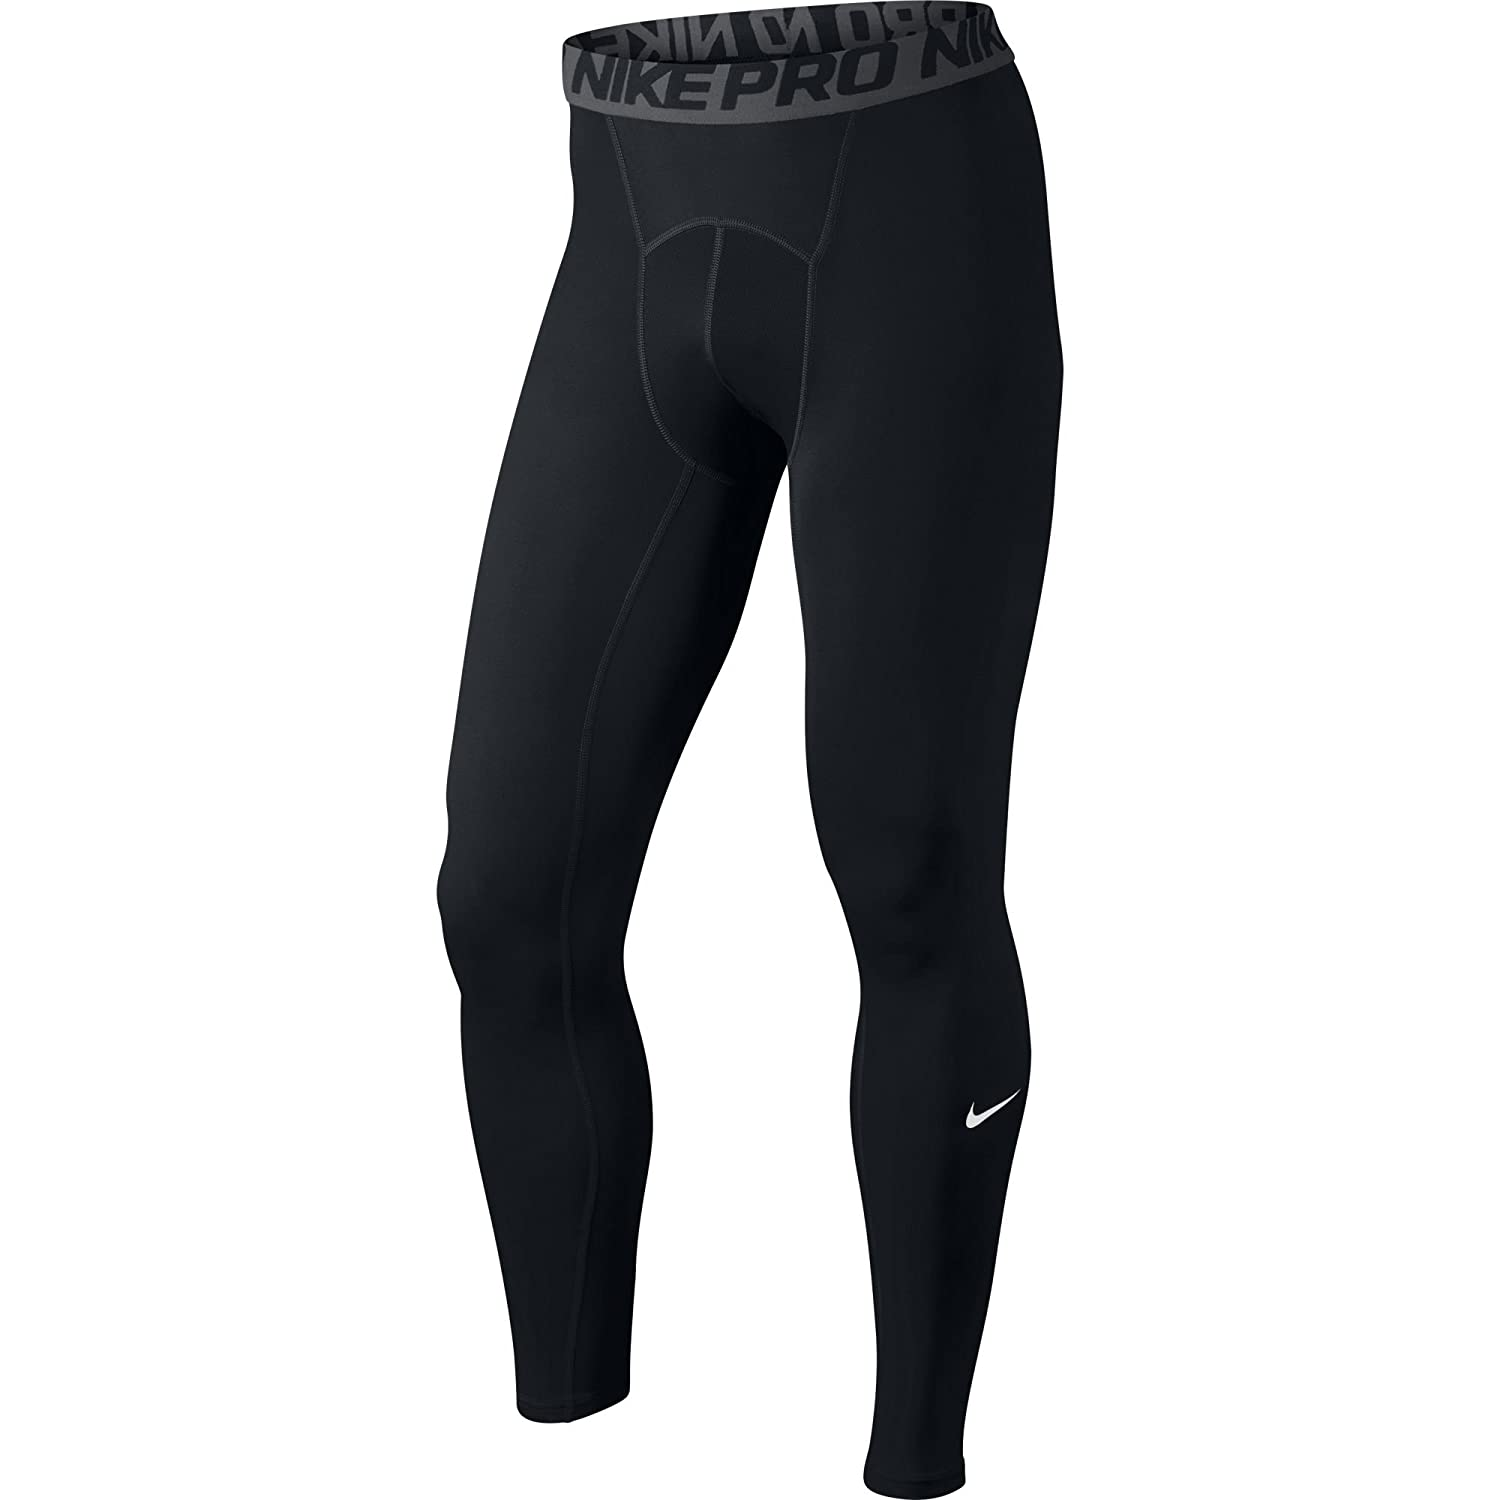 16c52722a0 Amazon.com : NIKE Men's Pro Tights : Clothing